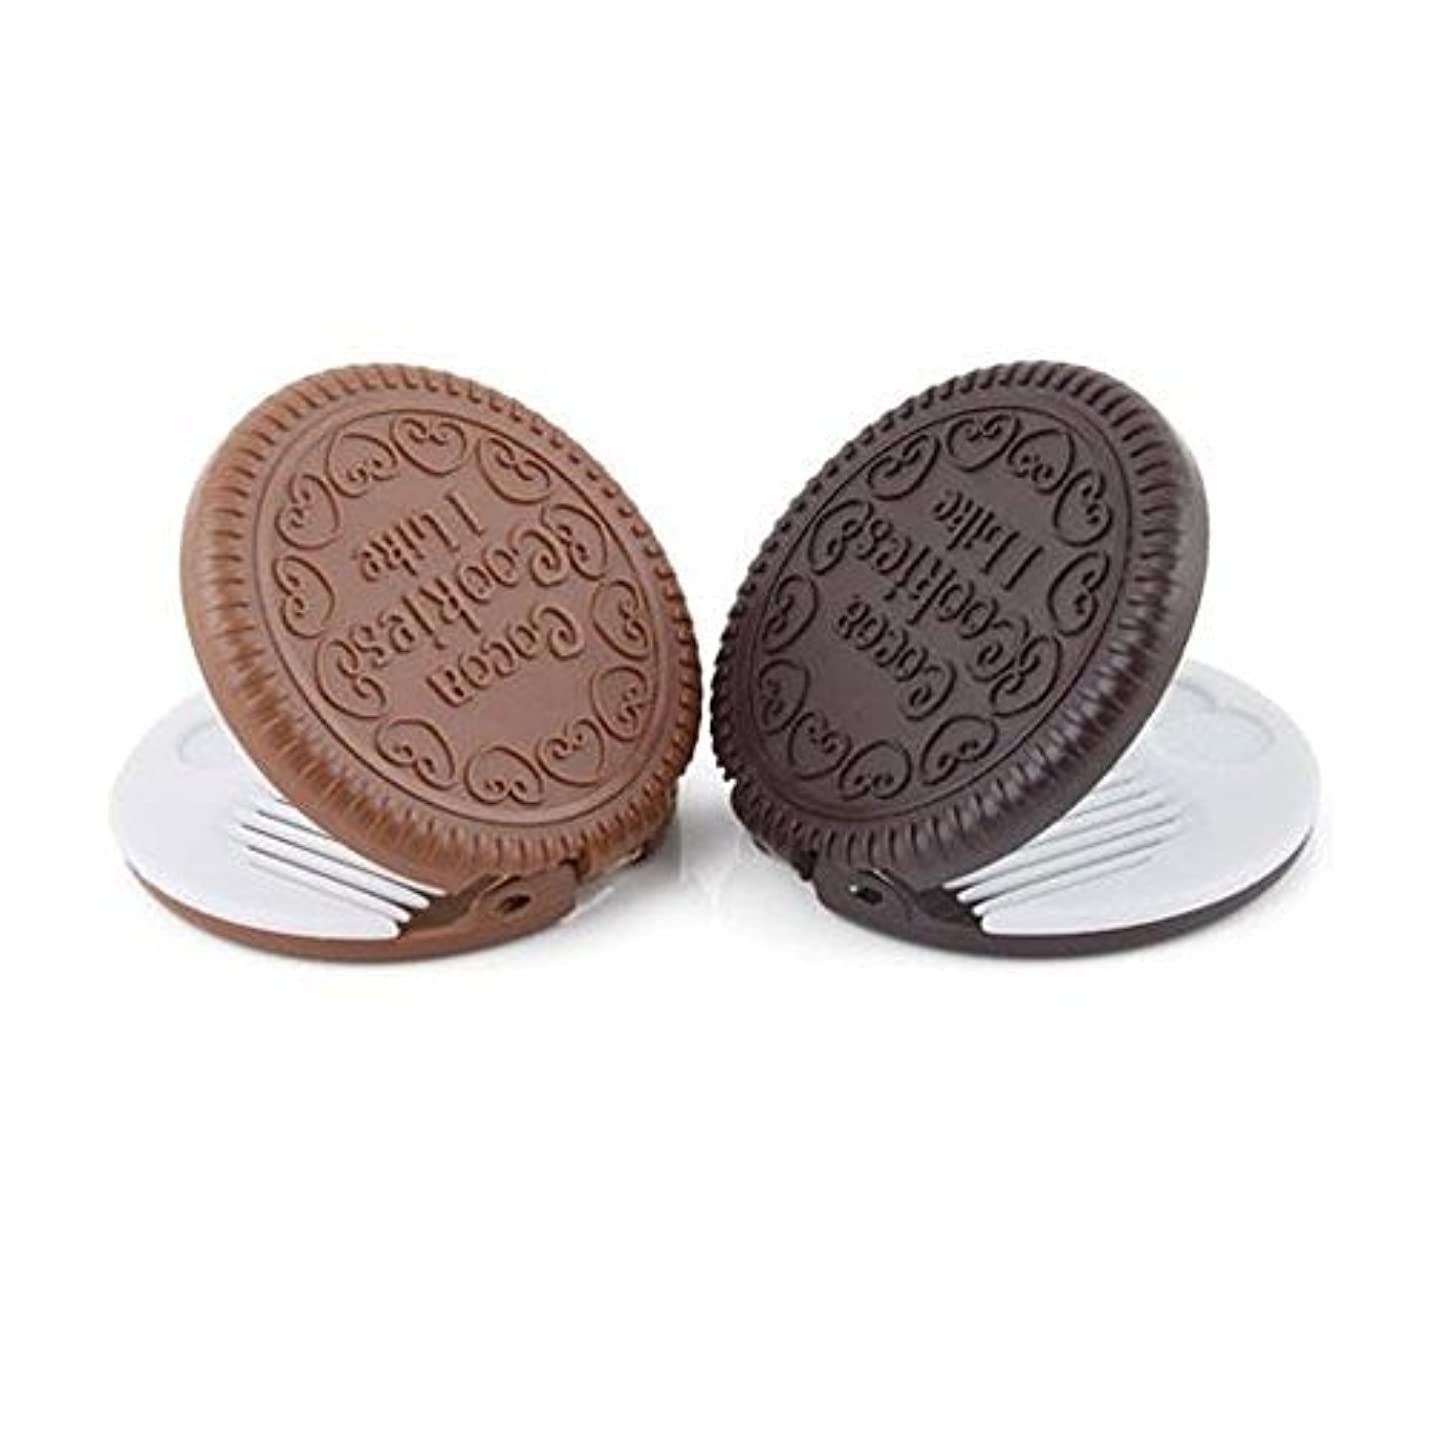 チャンス探偵入口yueton Pack of 2 Mini Pocket Chocolate Cookie Compact Mirror with Comb [並行輸入品]